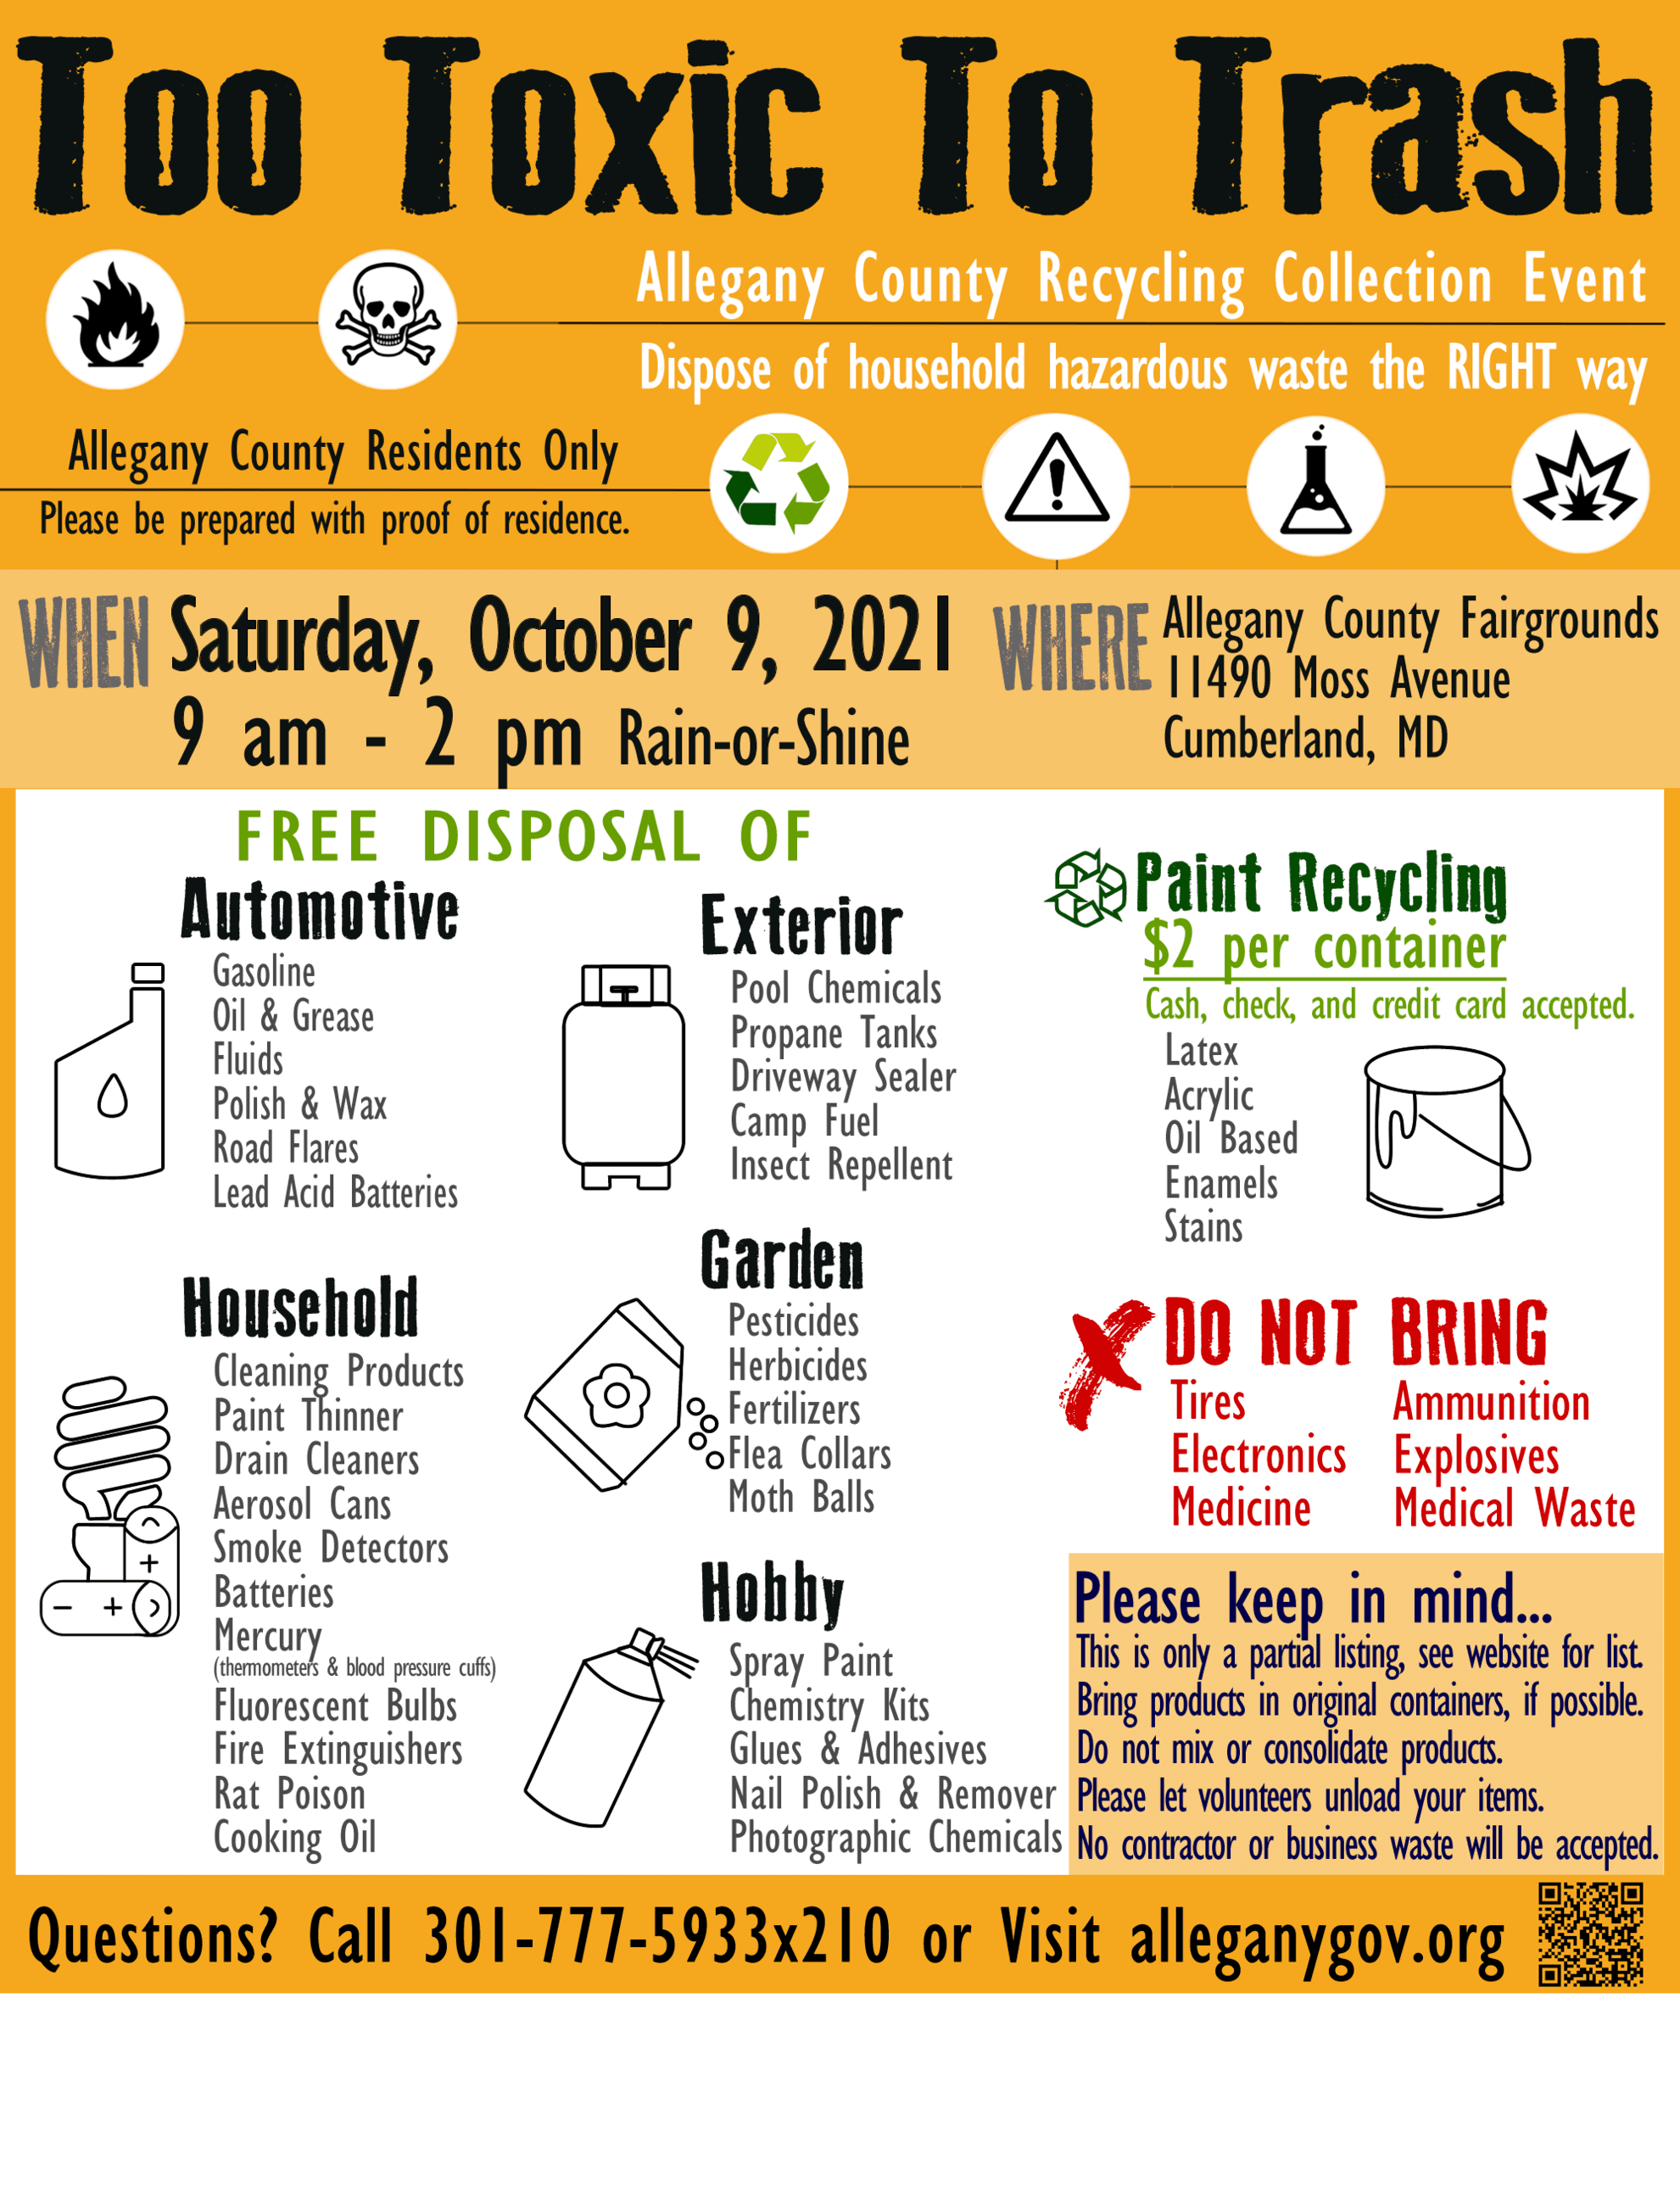 Too Toxic To Trash 2019 Event October